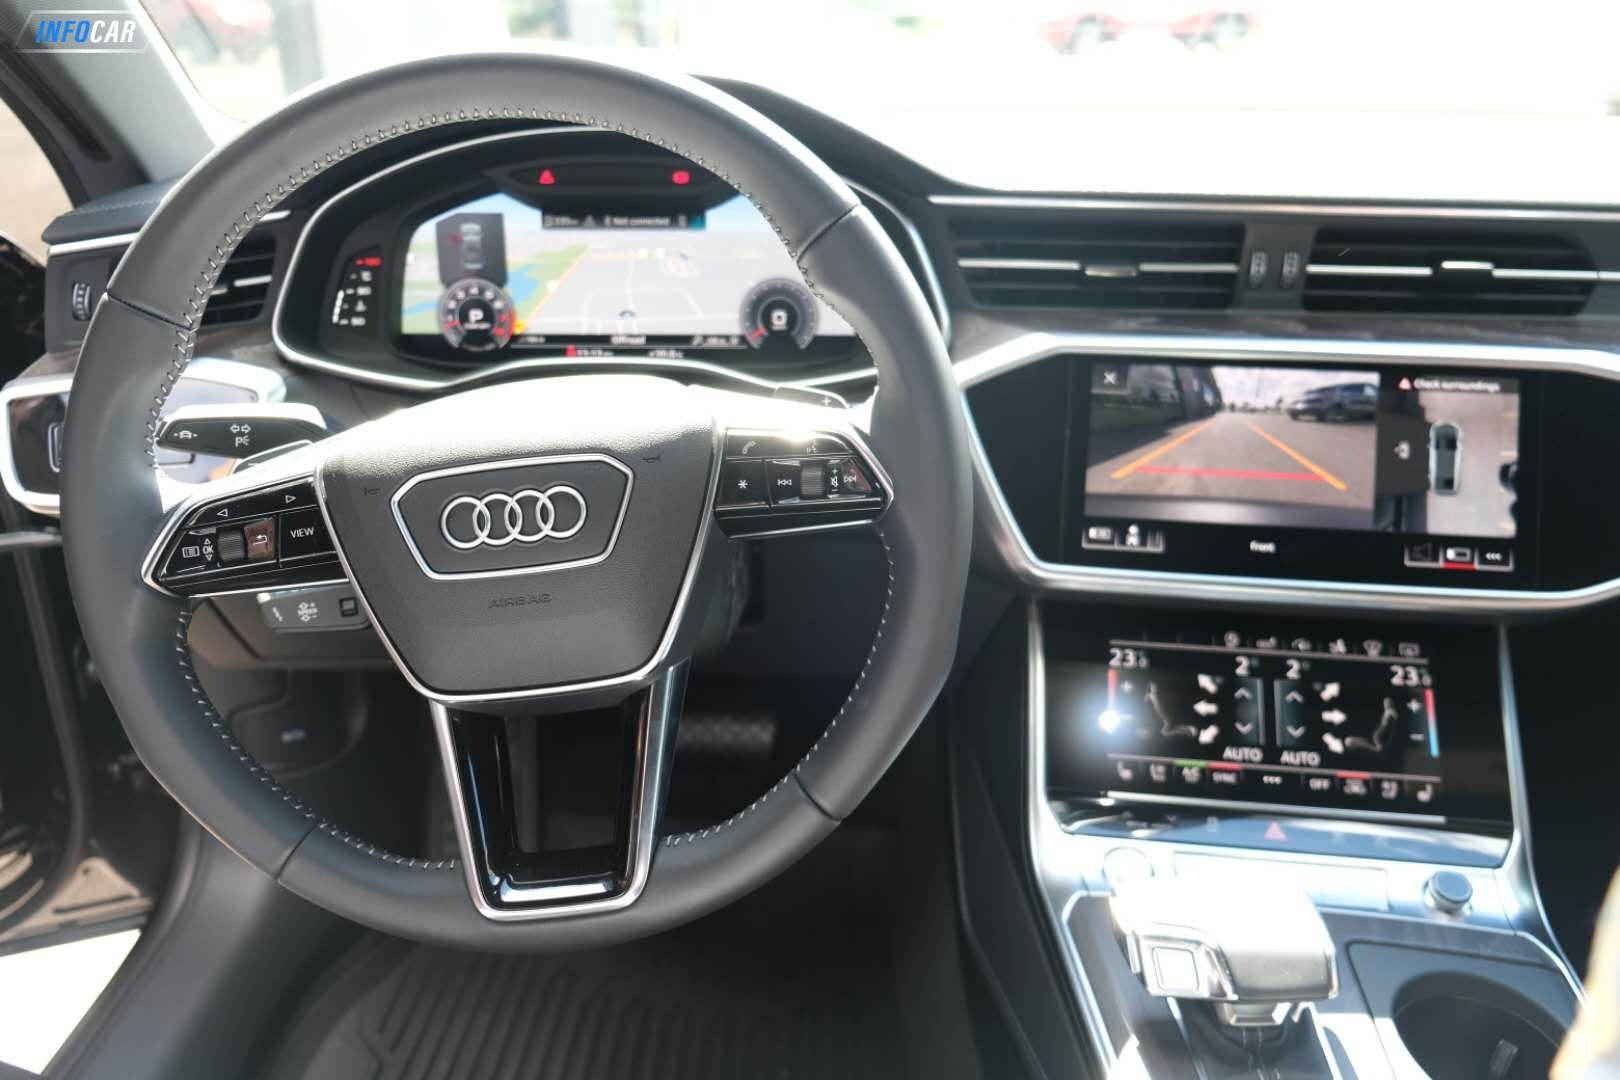 2020 Audi A7 TECHNIK FULLY LOADED - INFOCAR - Toronto's Most Comprehensive New and Used Auto Trading Platform